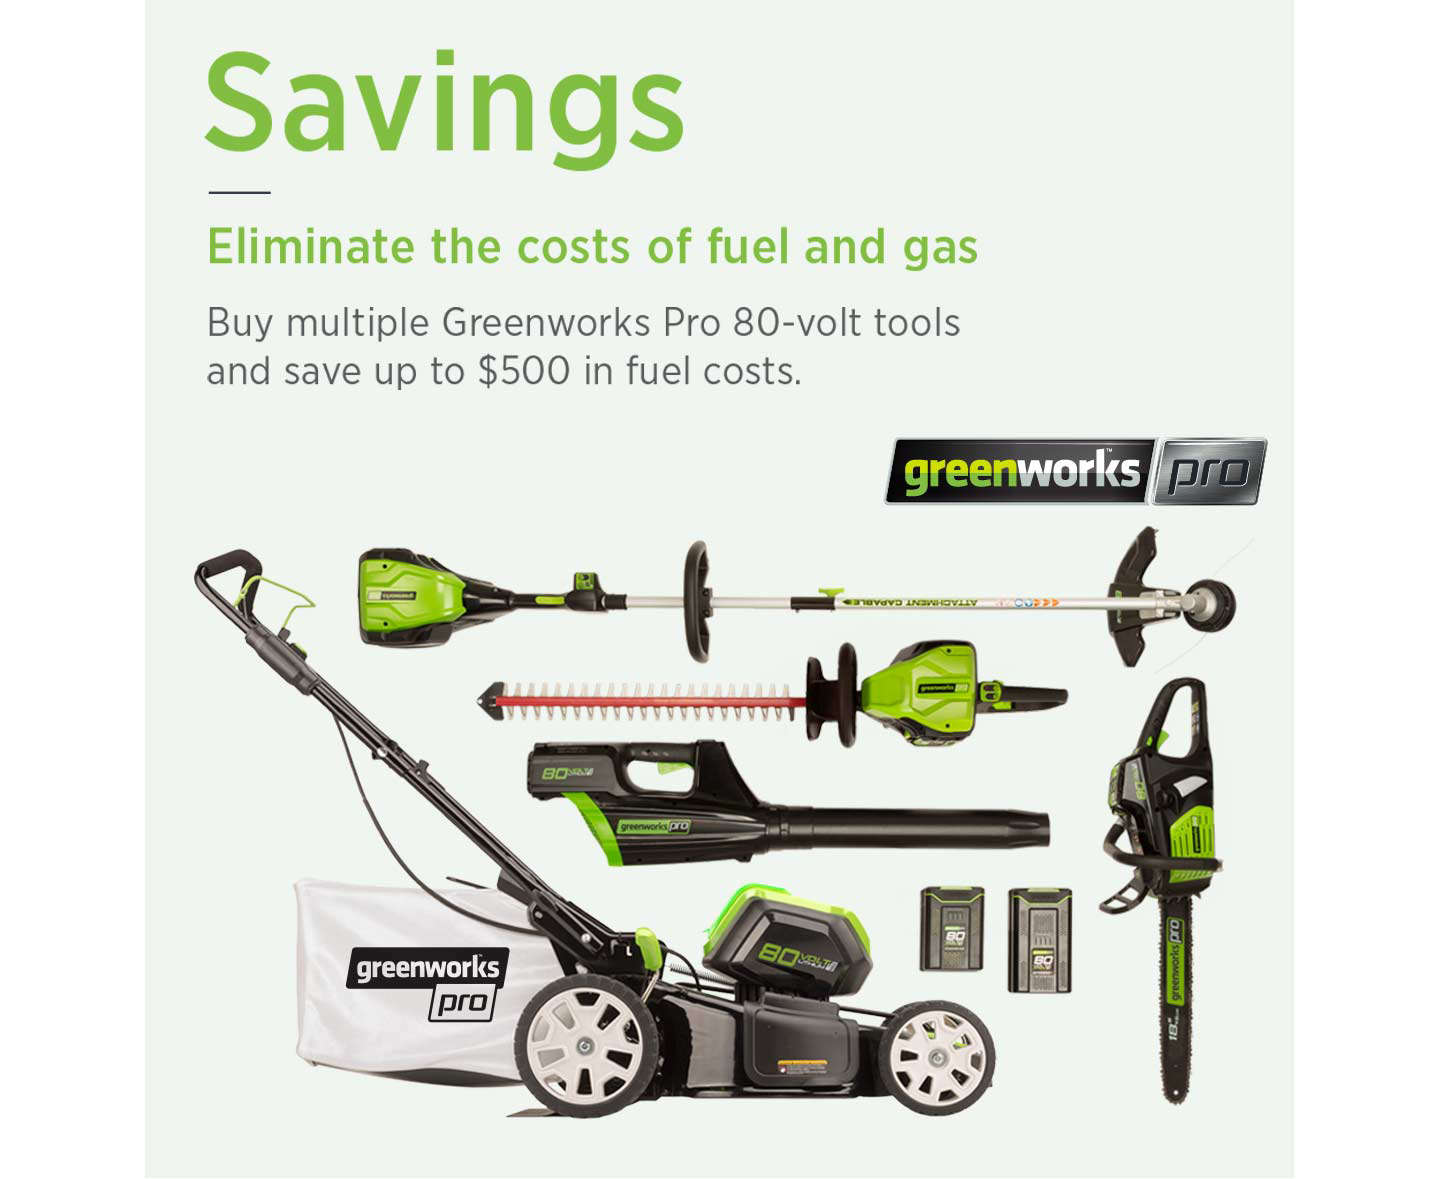 Savings - Eliminate the costs of fuel and gas